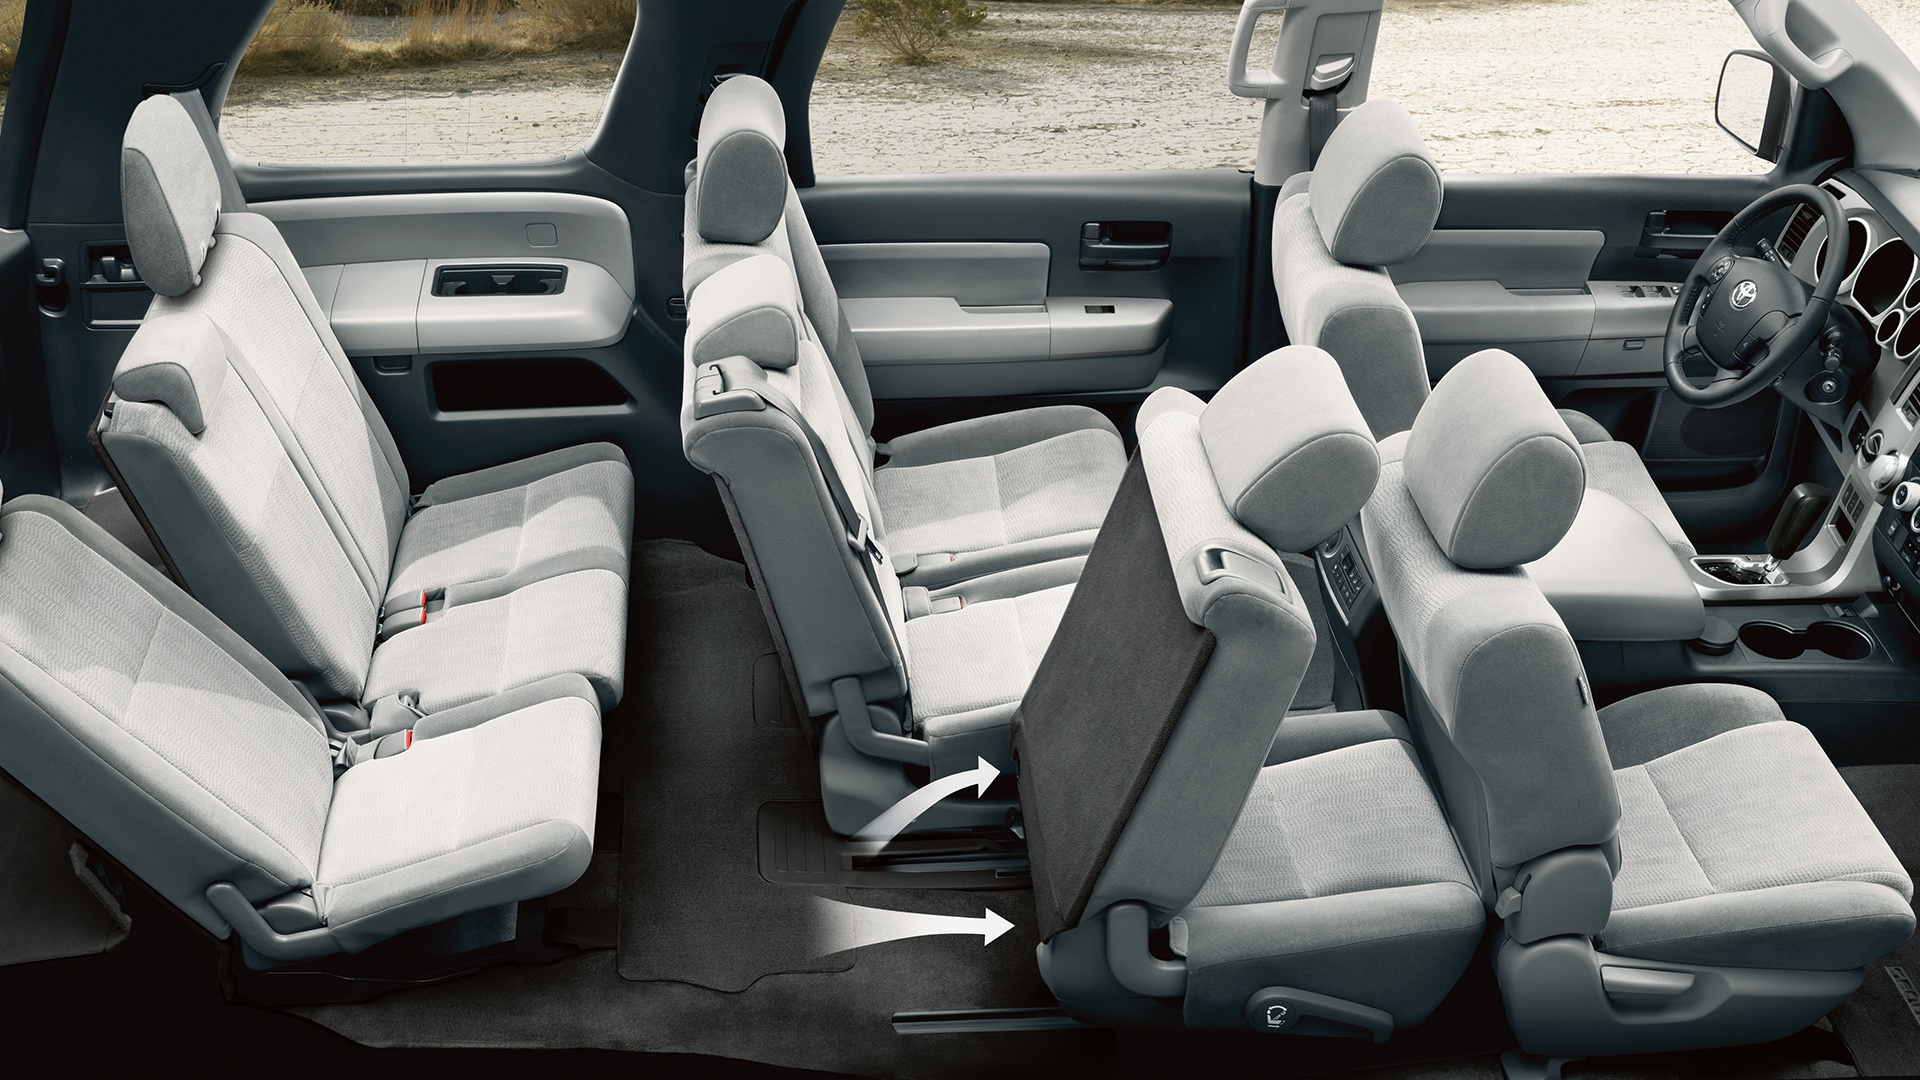 Ira Toyota of Danvers - The 2017 Toyota Sequoia is Everything You ...